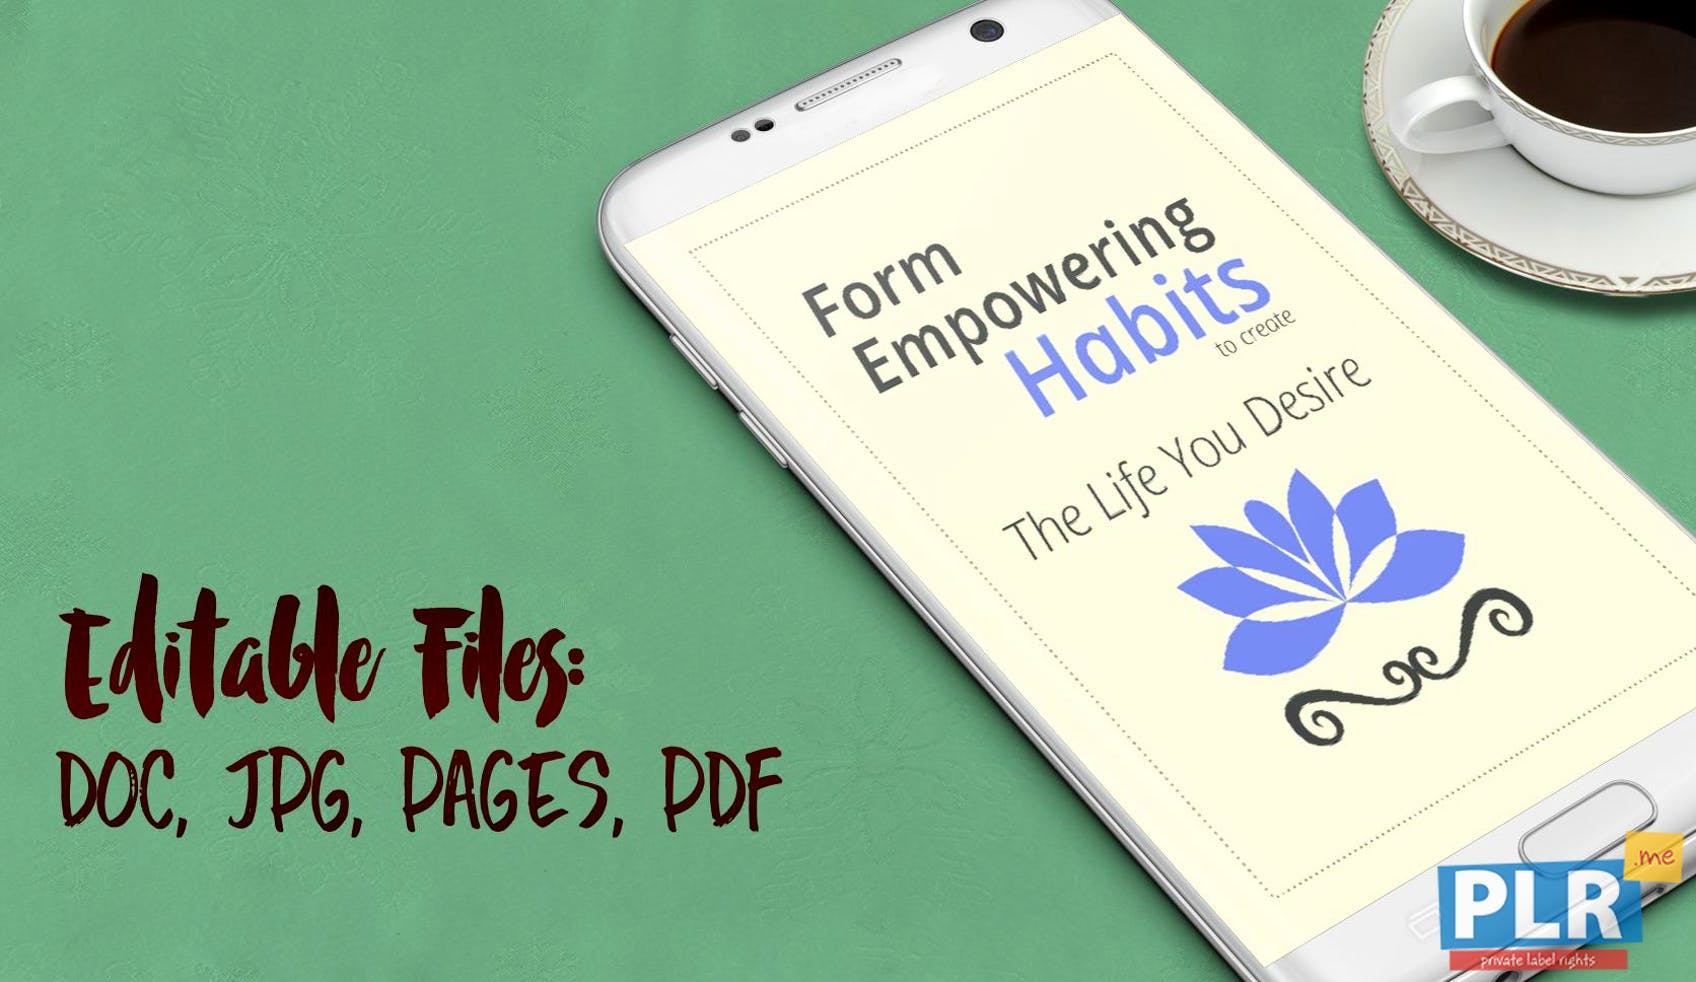 Form Empowering Habits To Create The Life You Desire